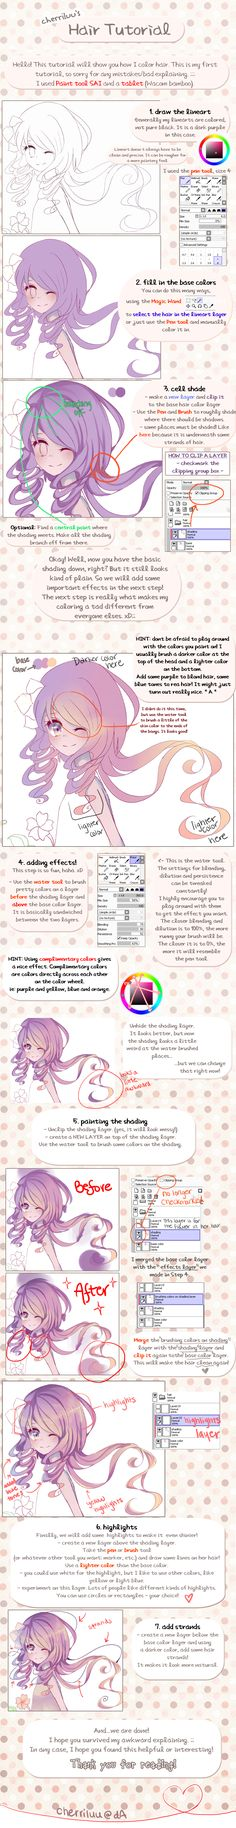 Hair tutorial by cherriluu on DeviantArt